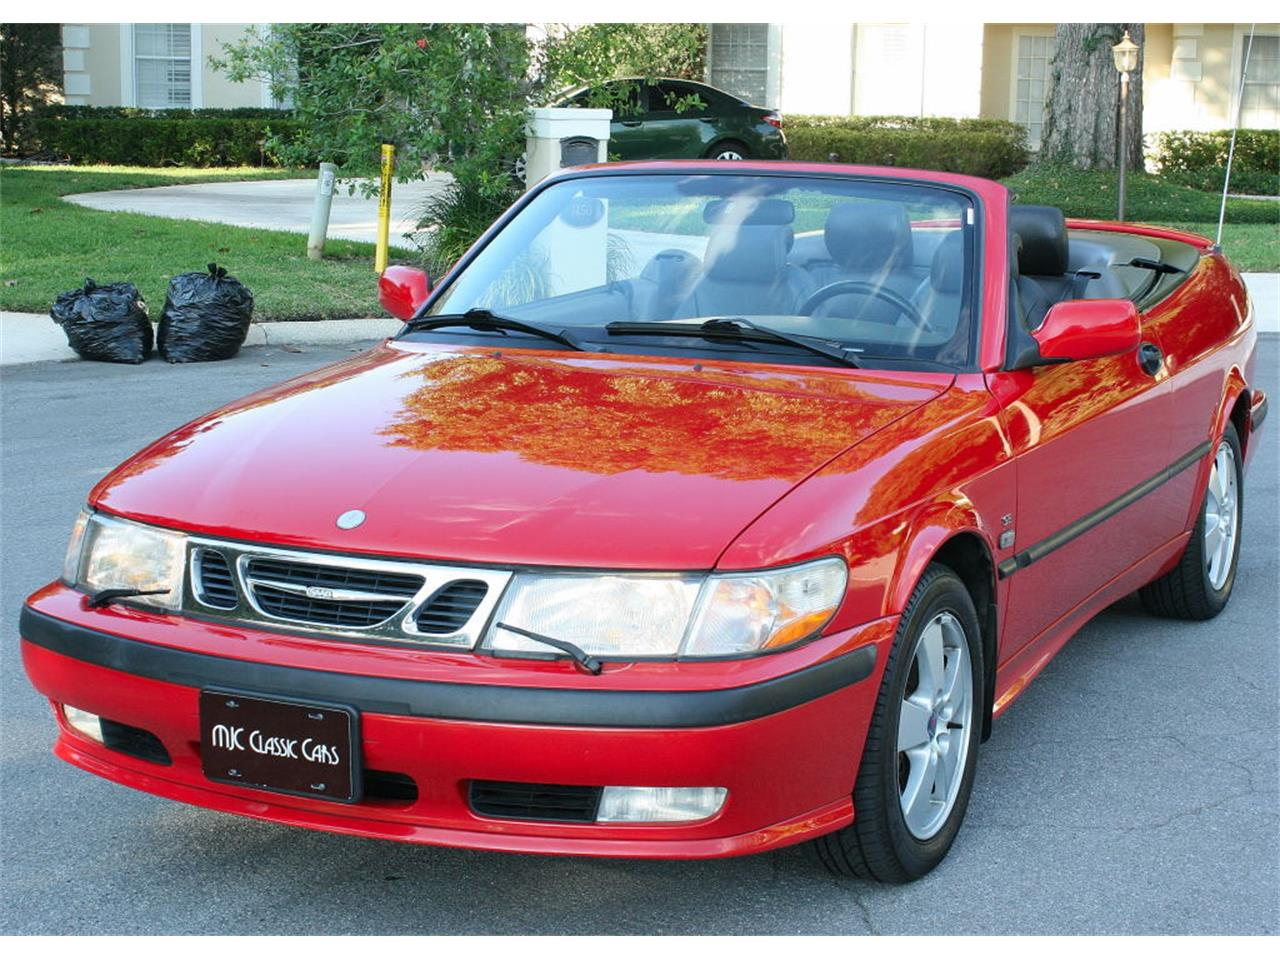 Saab For Sale >> 2002 Saab 9 3 For Sale Classiccars Com Cc 980296